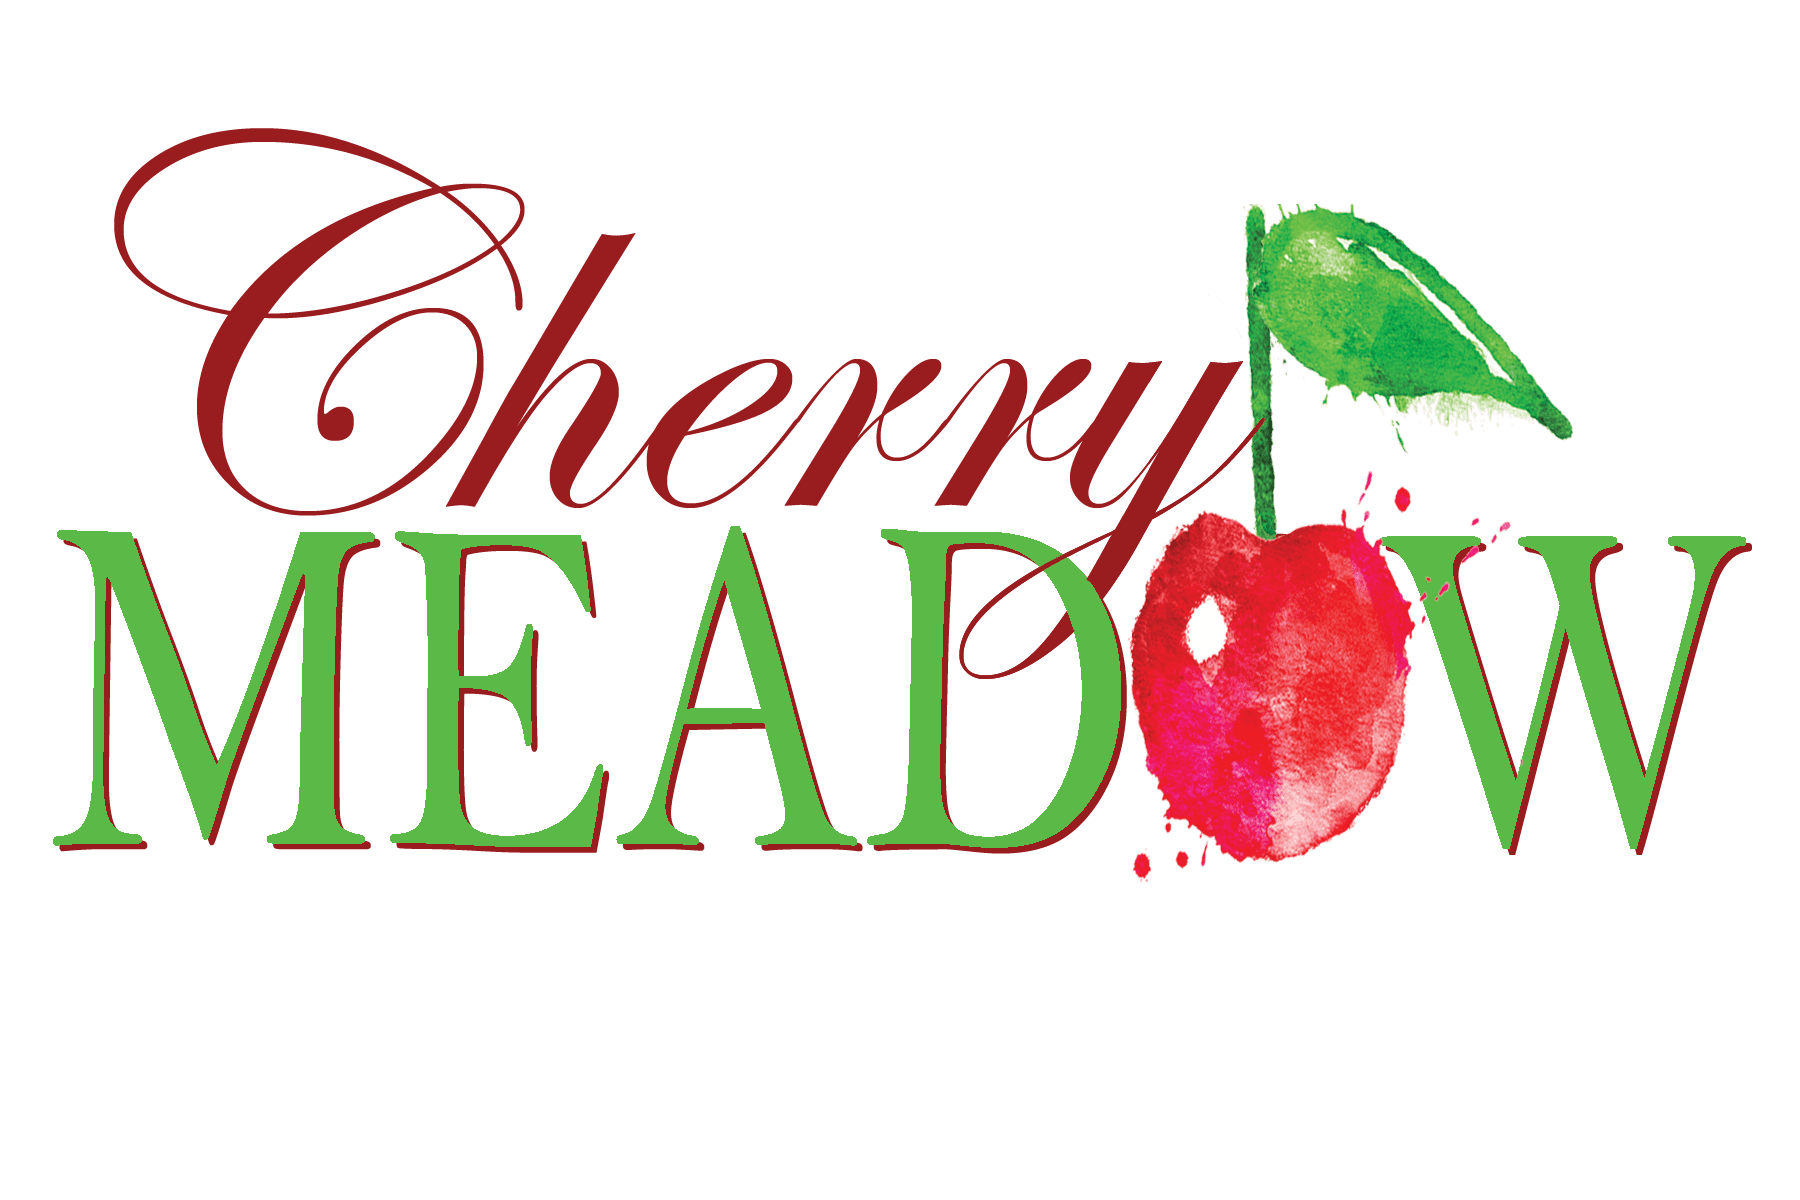 Cherry Meadow Winery Logo Branding Design Cedar Rapids Iowa